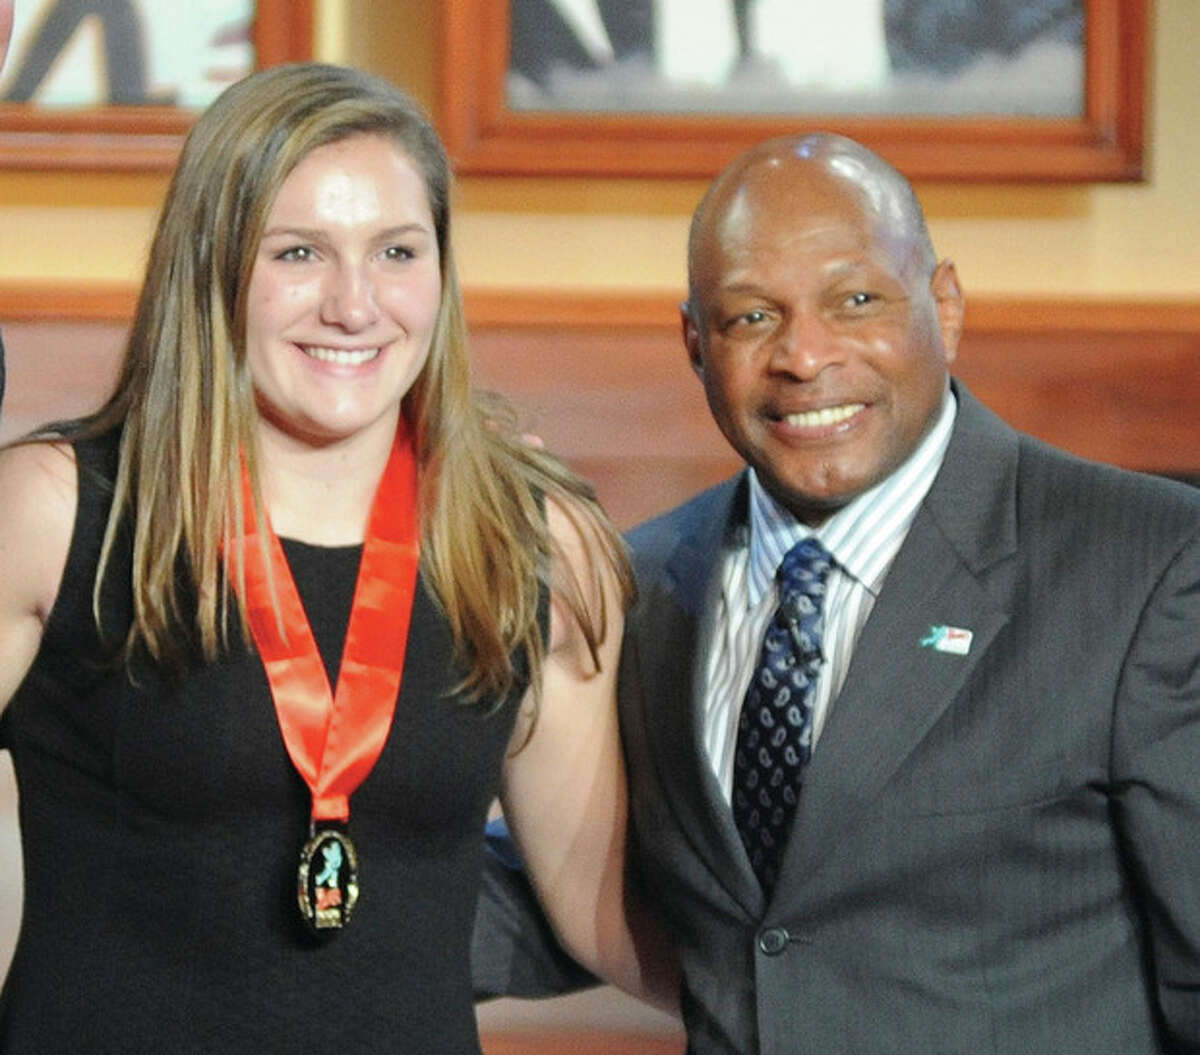 Hour photo/John Nash Wilton High senior Casey Pearsall, left, poses for a photo with two-time Heisman Trophy winner Archie Griffin after she received her medal for being one of 12 national finalists for the Wendy's High School Heisman at the Best Buy Theater in New York City on Friday night.